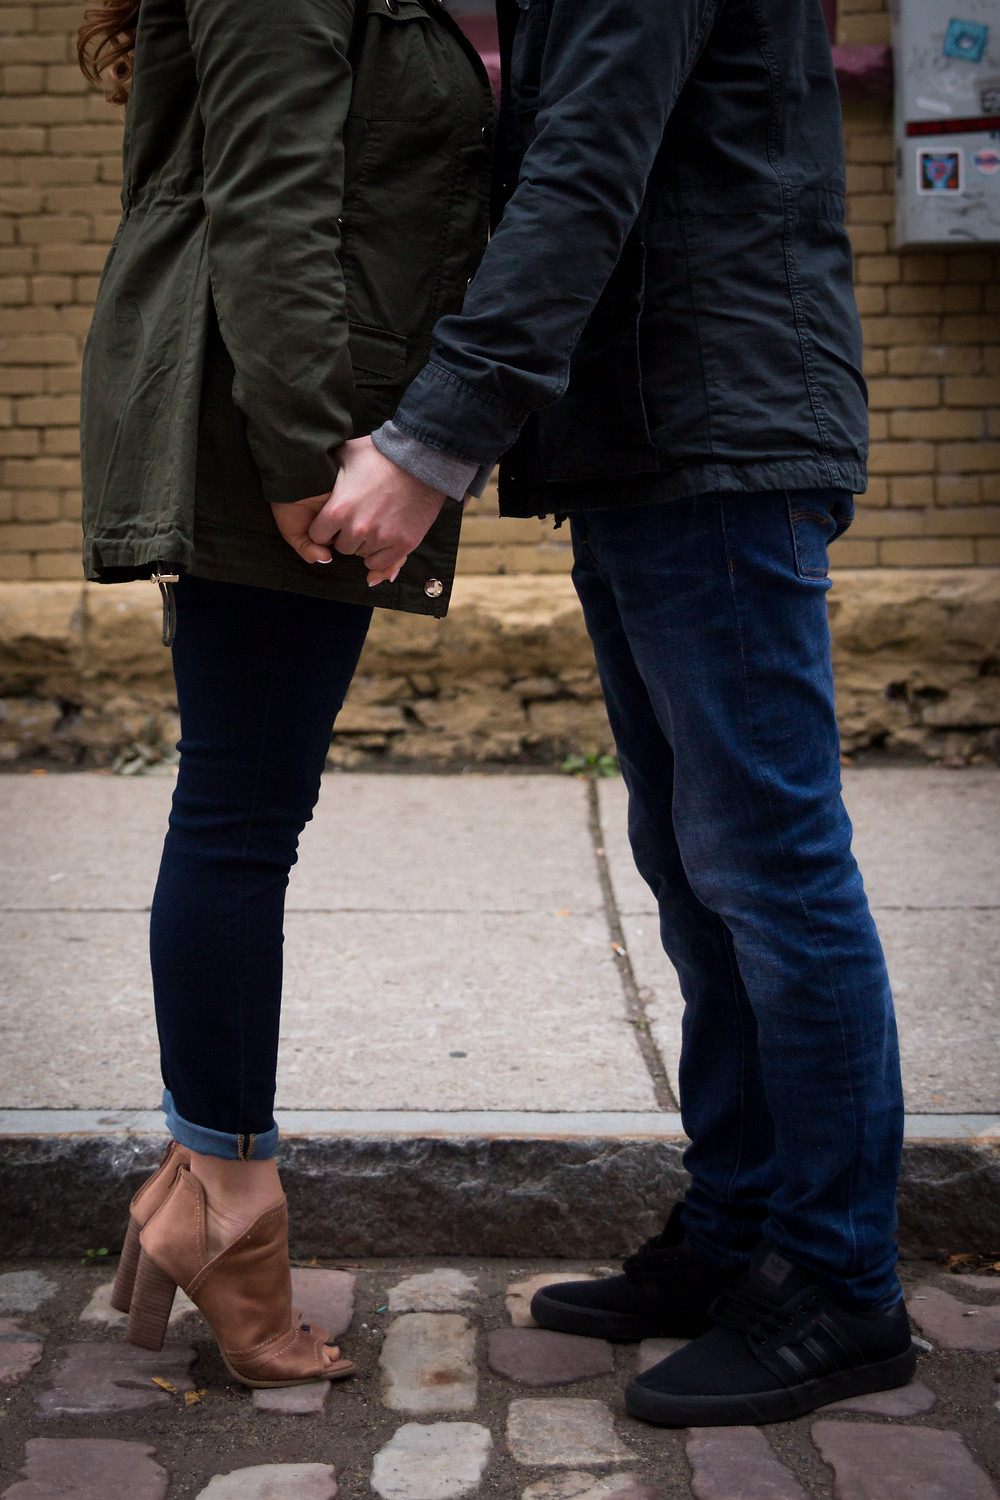 intimate cobblestone district Buffalo couples photo shoot engagement session